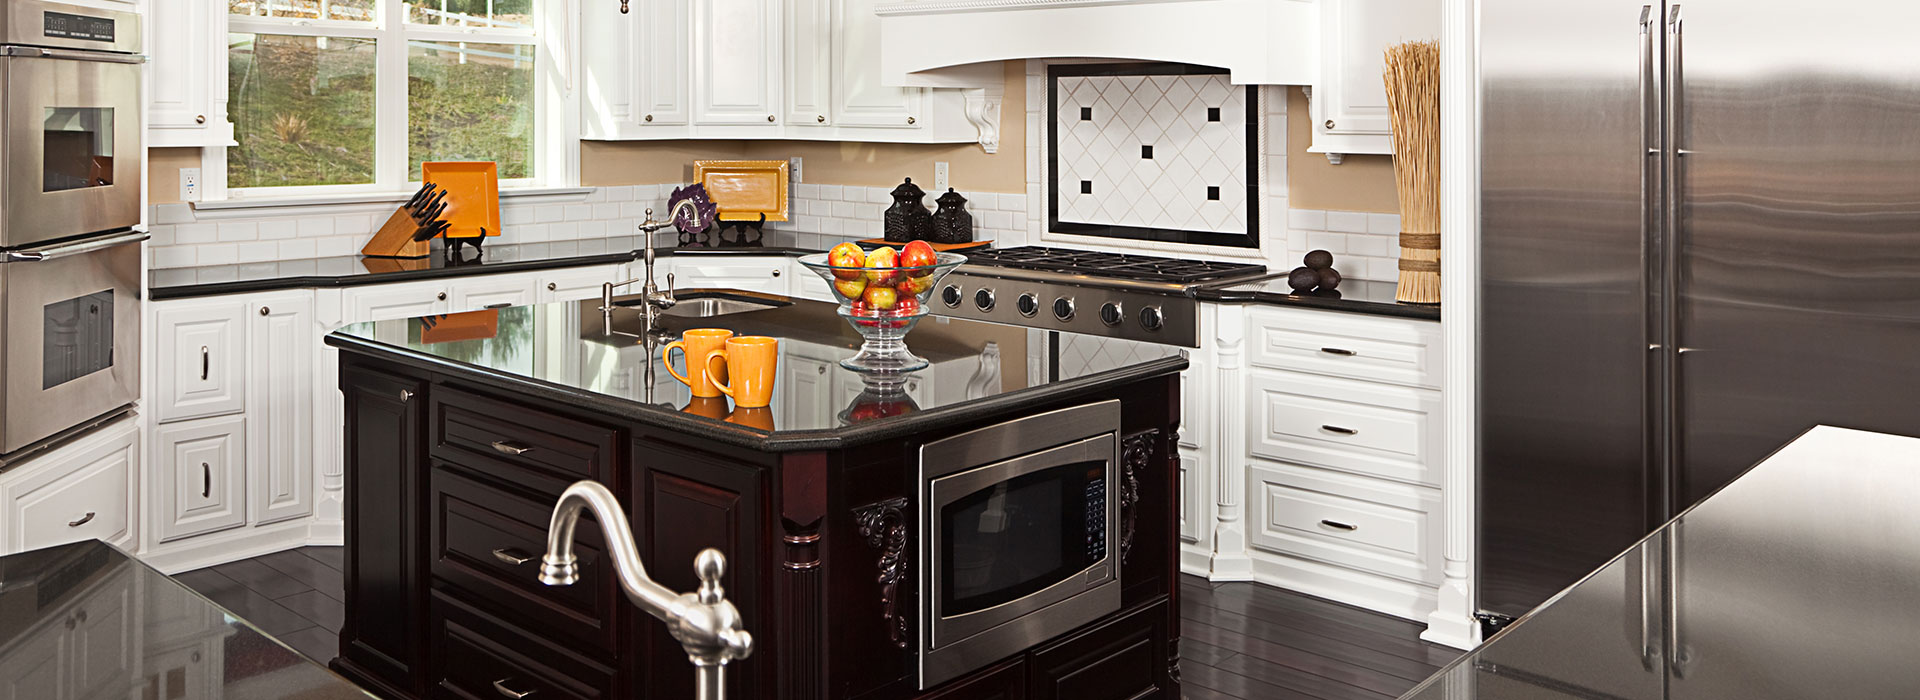 Uncategorized Kitchen Appliance Repairs express appliance repair commercial virginia va residential repairs